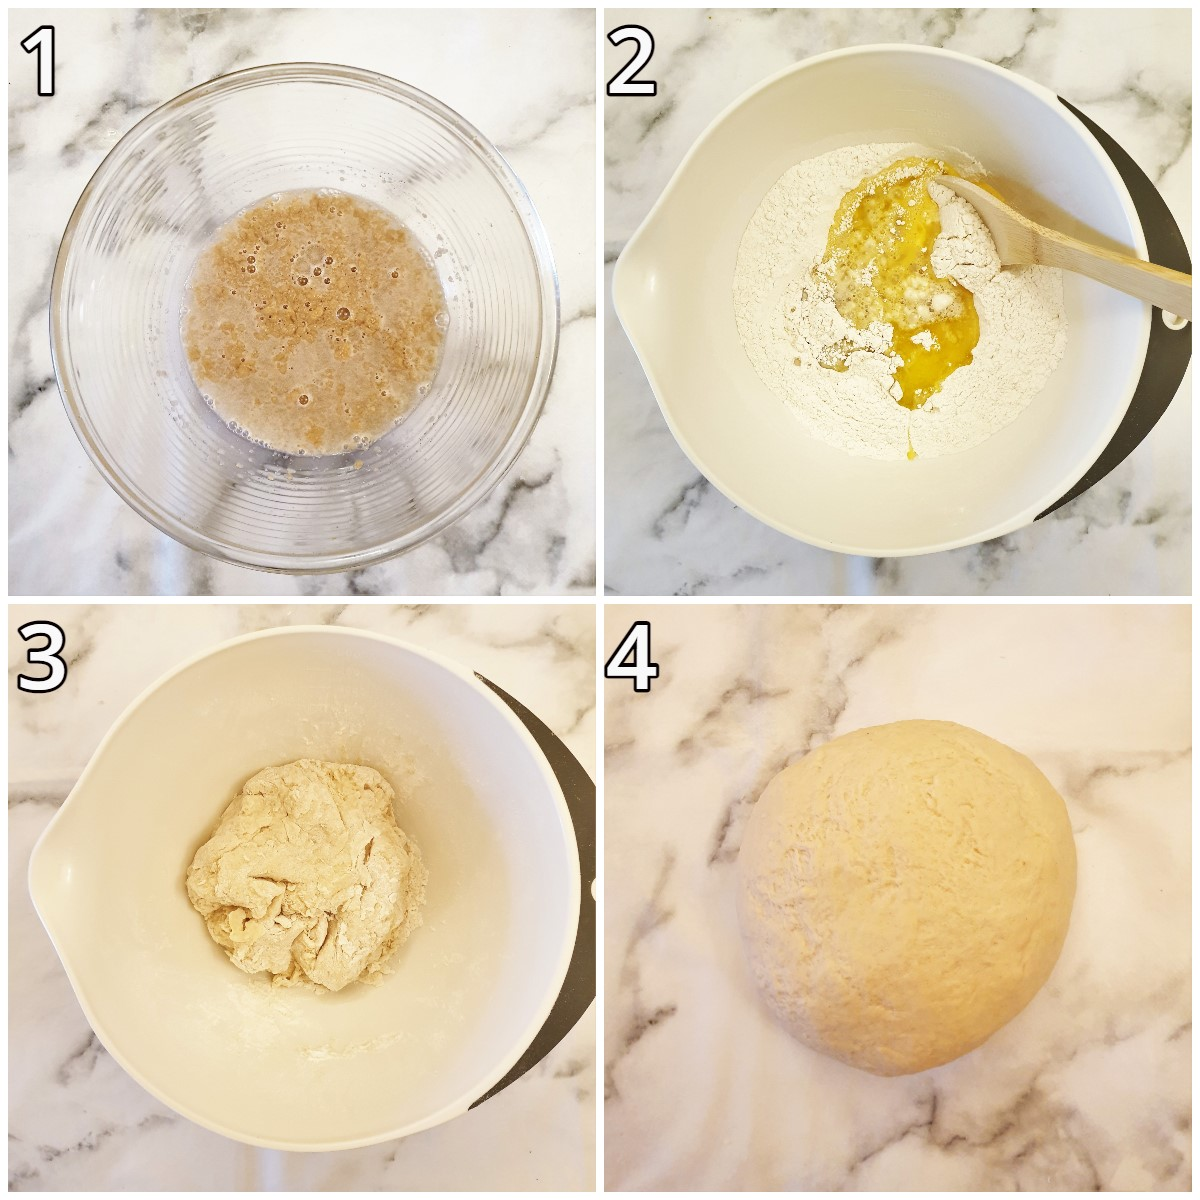 Steps for mixing the dough.